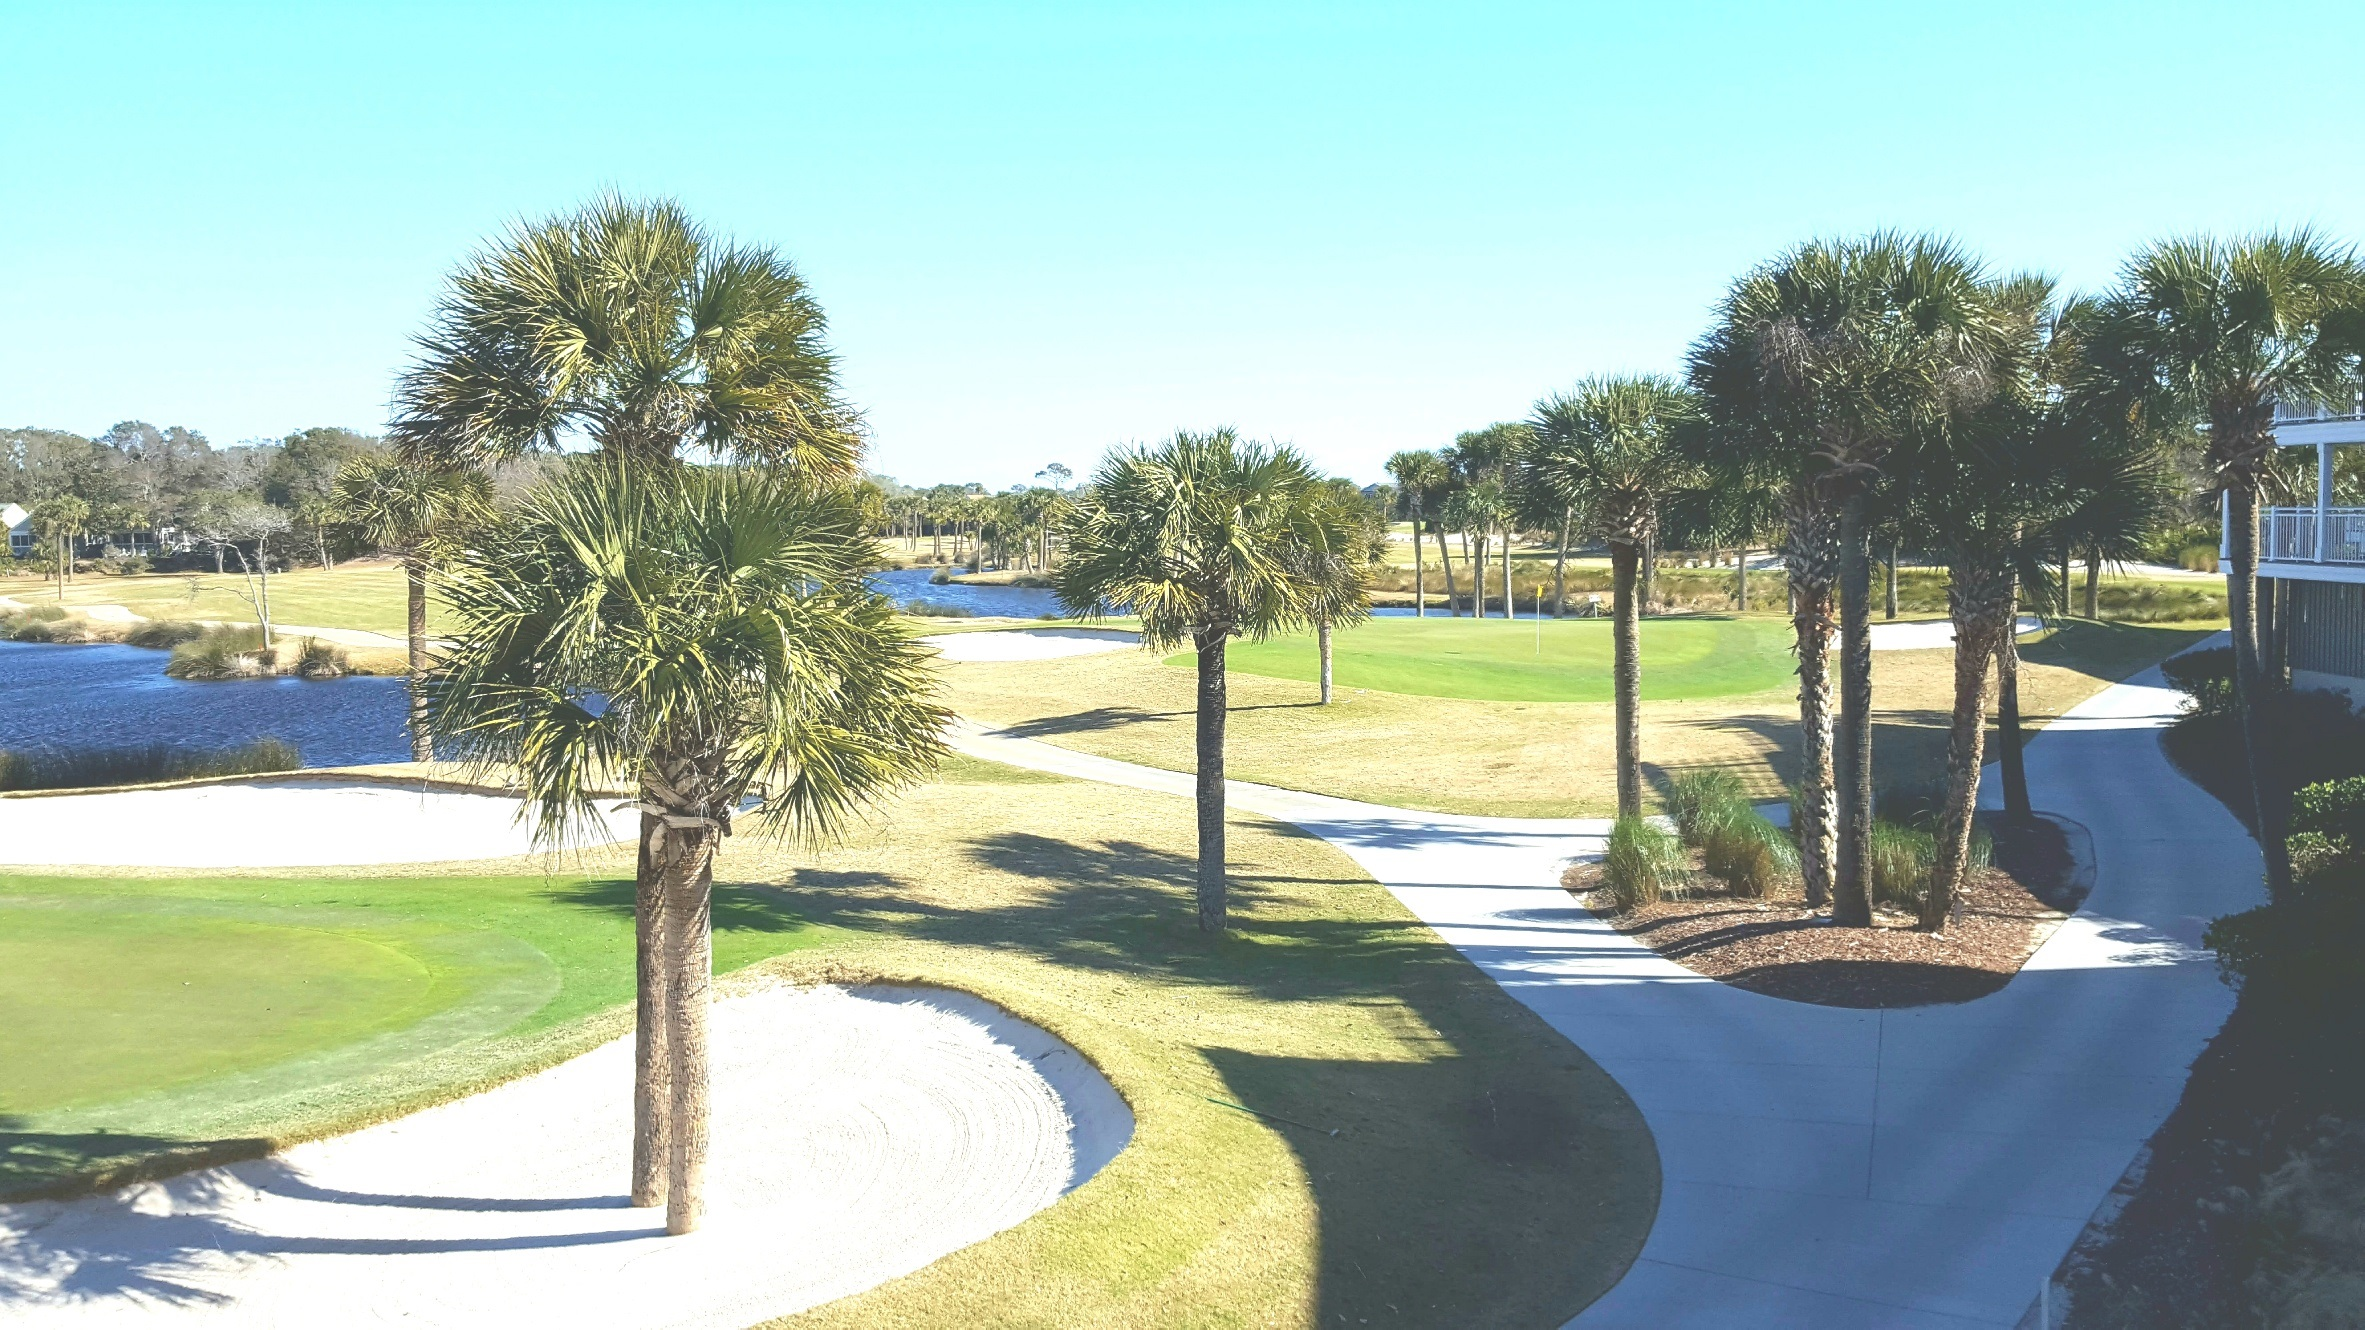 Expansive Ocean Winds golf course panorama, view east, of 18th fairway & green. 10th fairway in the distance.